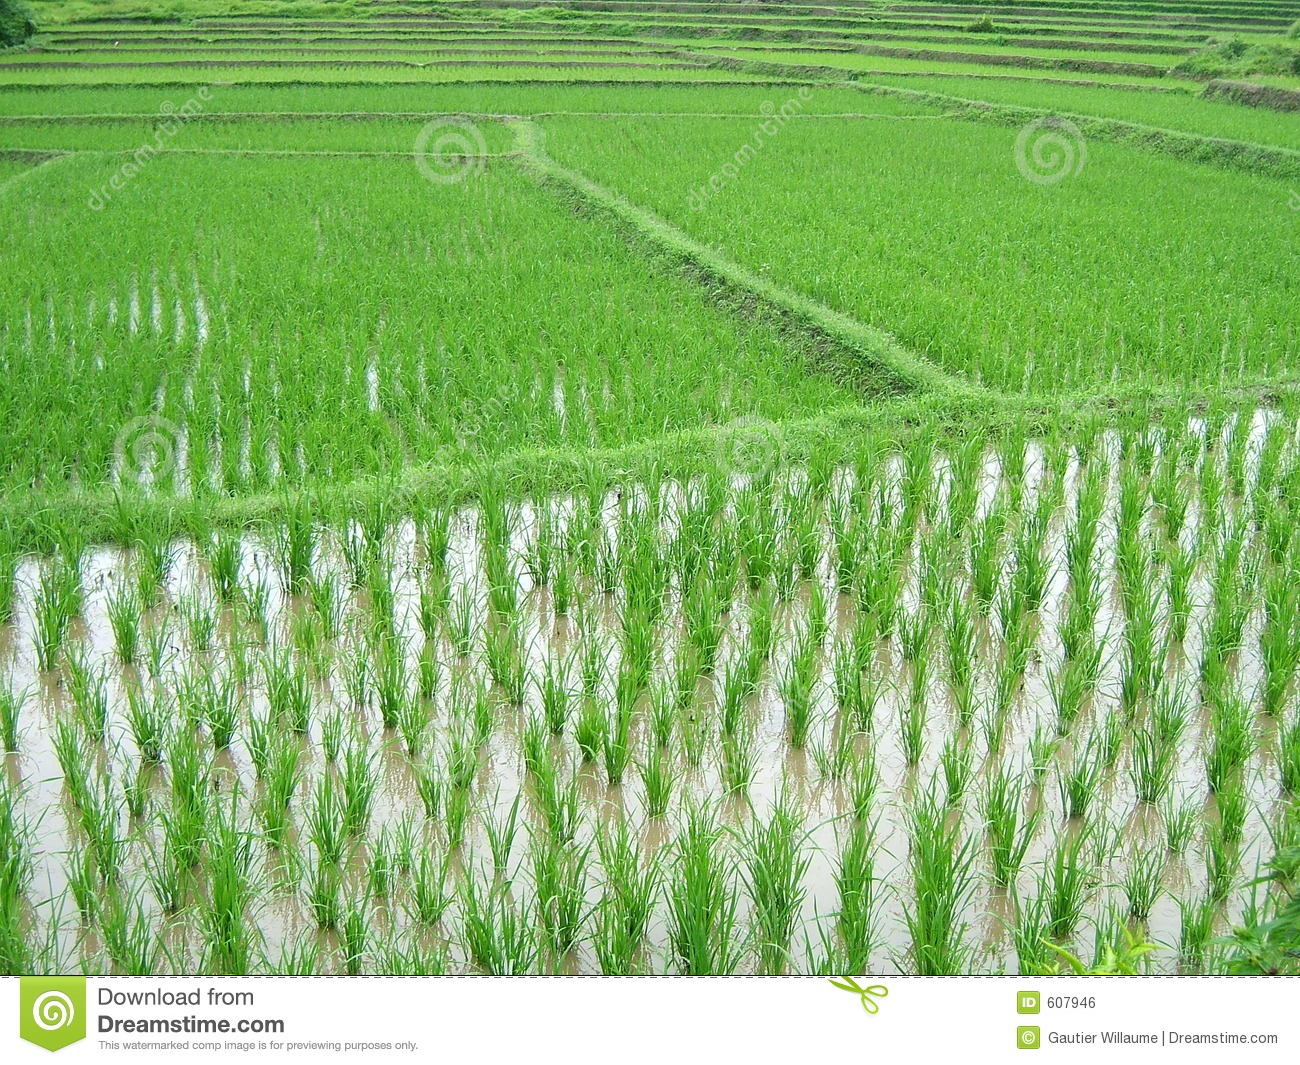 Rice Plantation Royalty Free Stock Image - Image: 607946